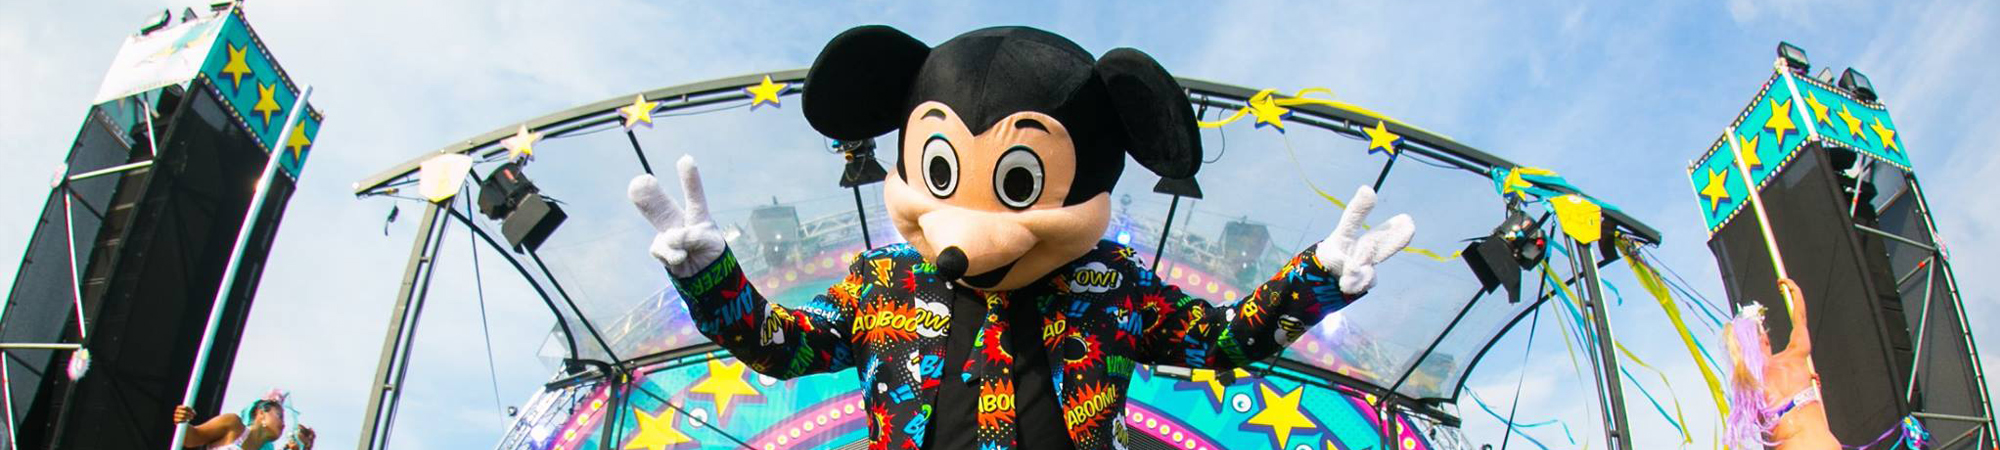 mickeymouse_crstlevententertainment